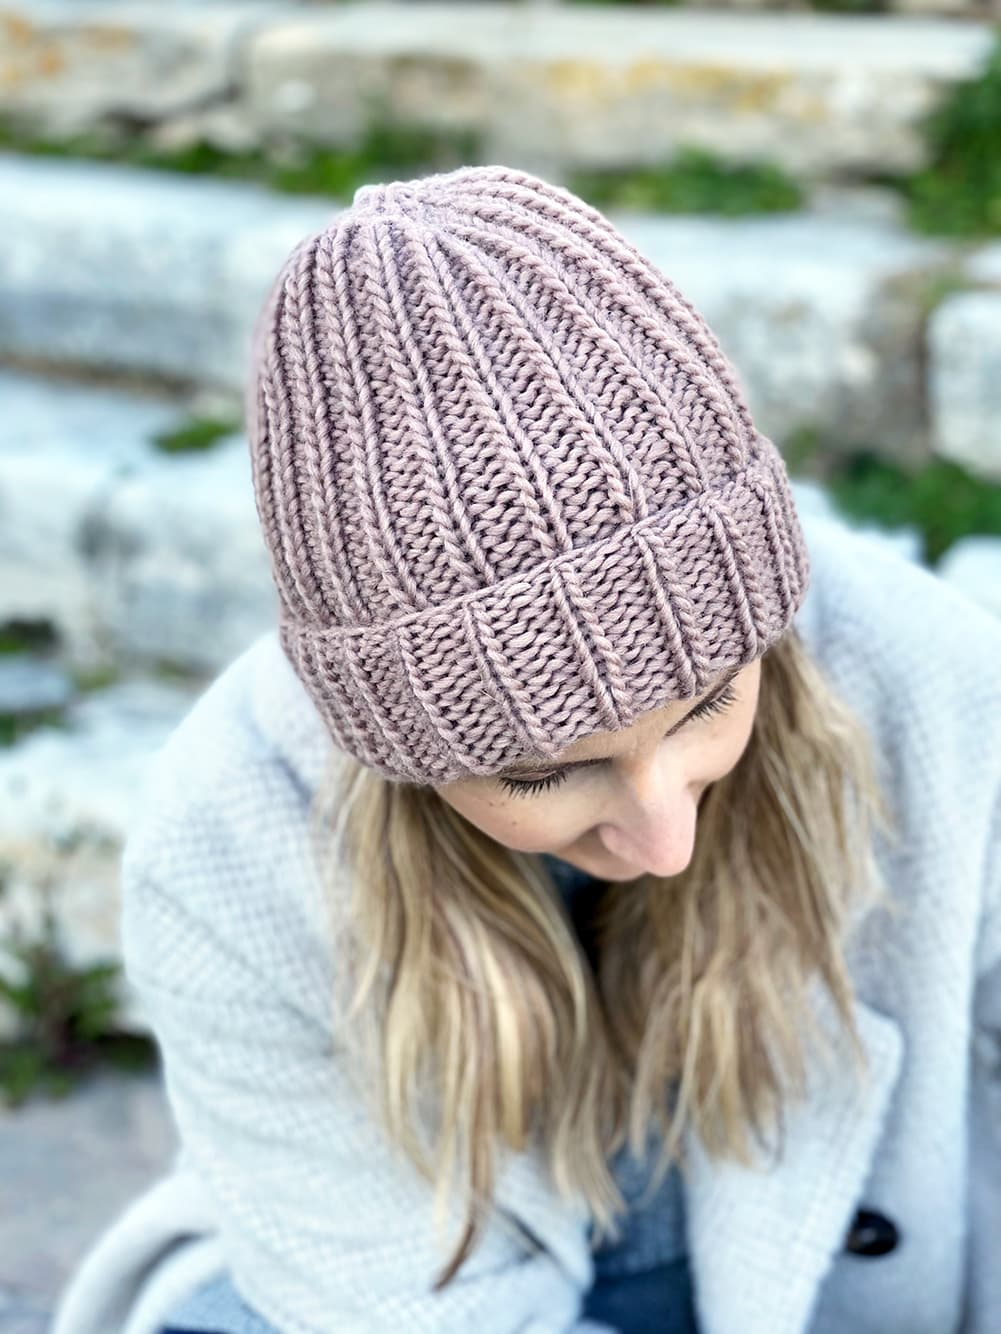 ribbed beanie in spotted mauve petite wool knit with straight needles